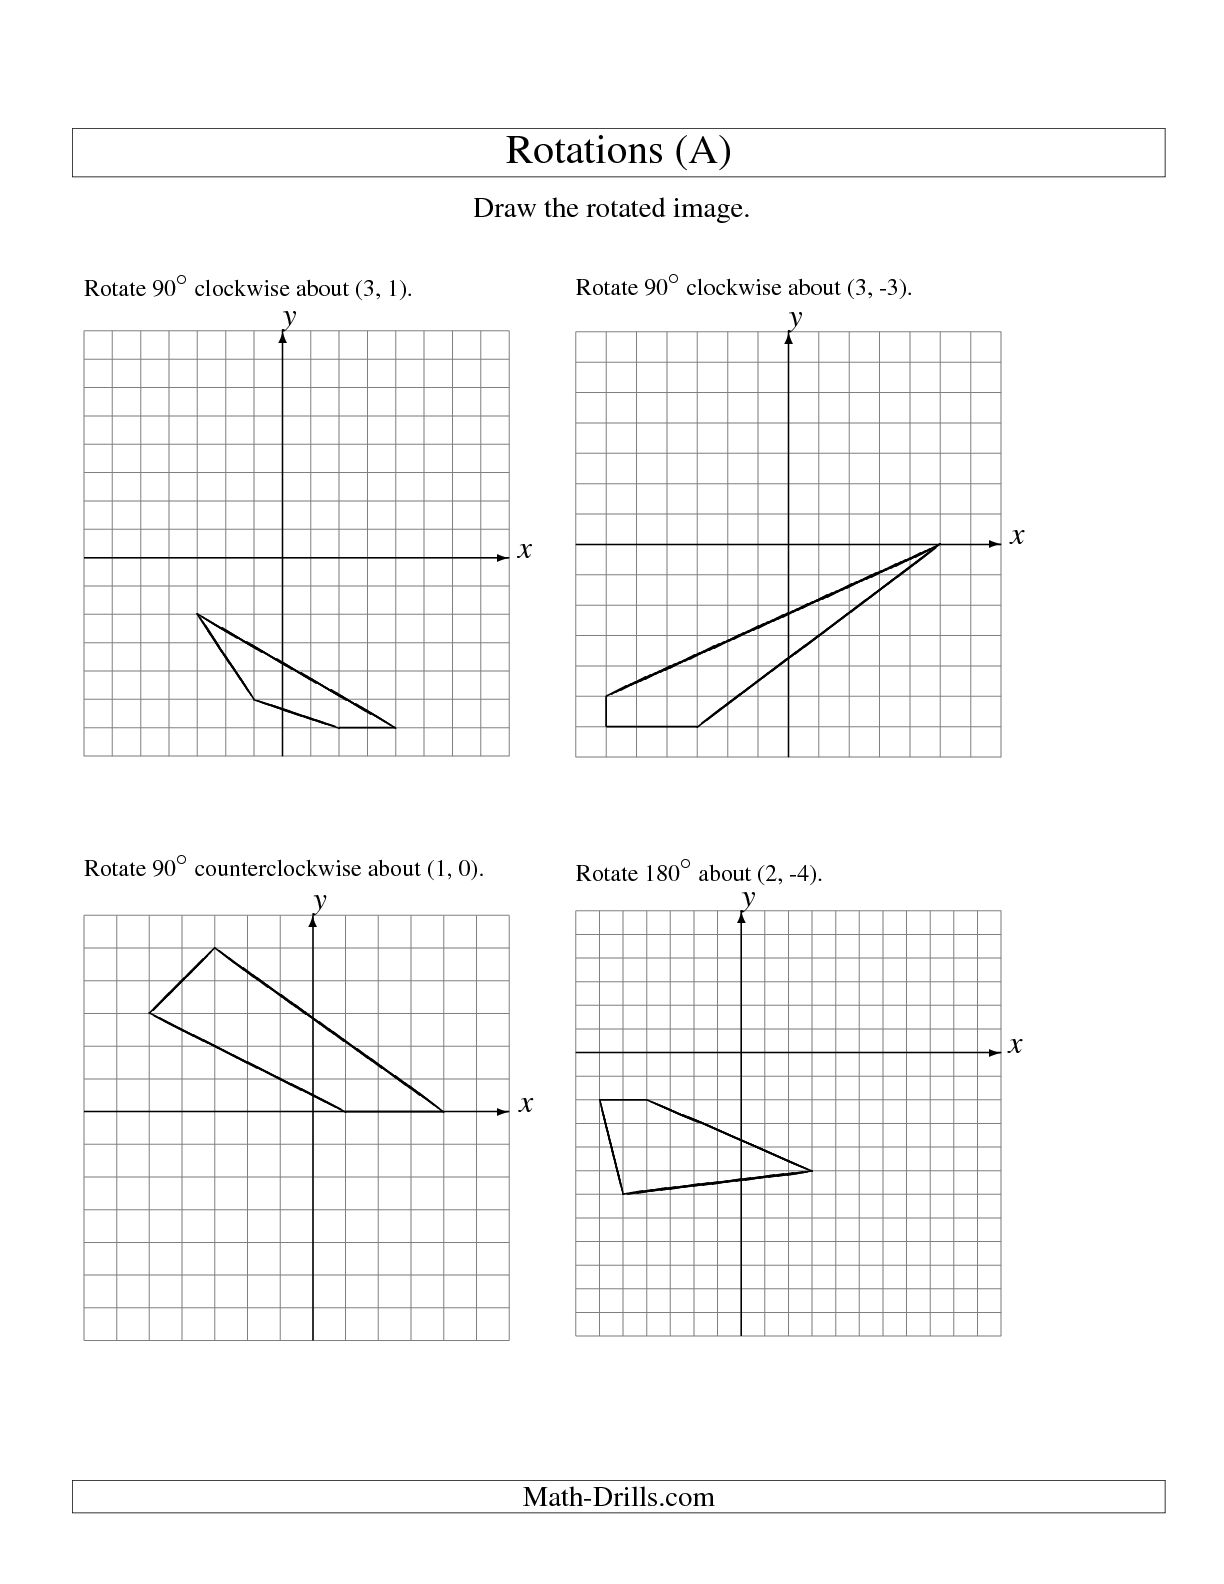 17 Best Images Of Rotation Math Worksheets